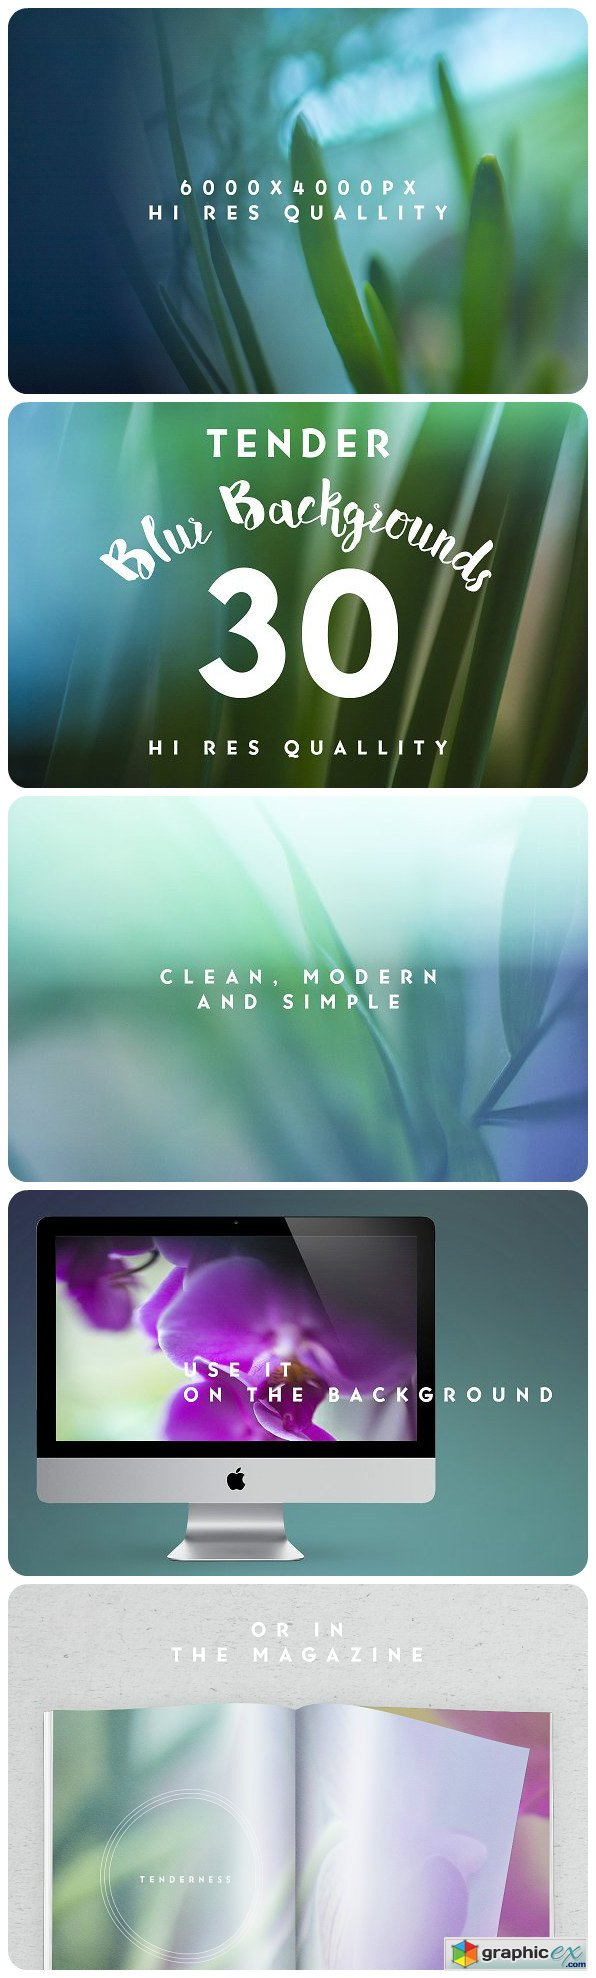 30 Tender blur texture backgrounds